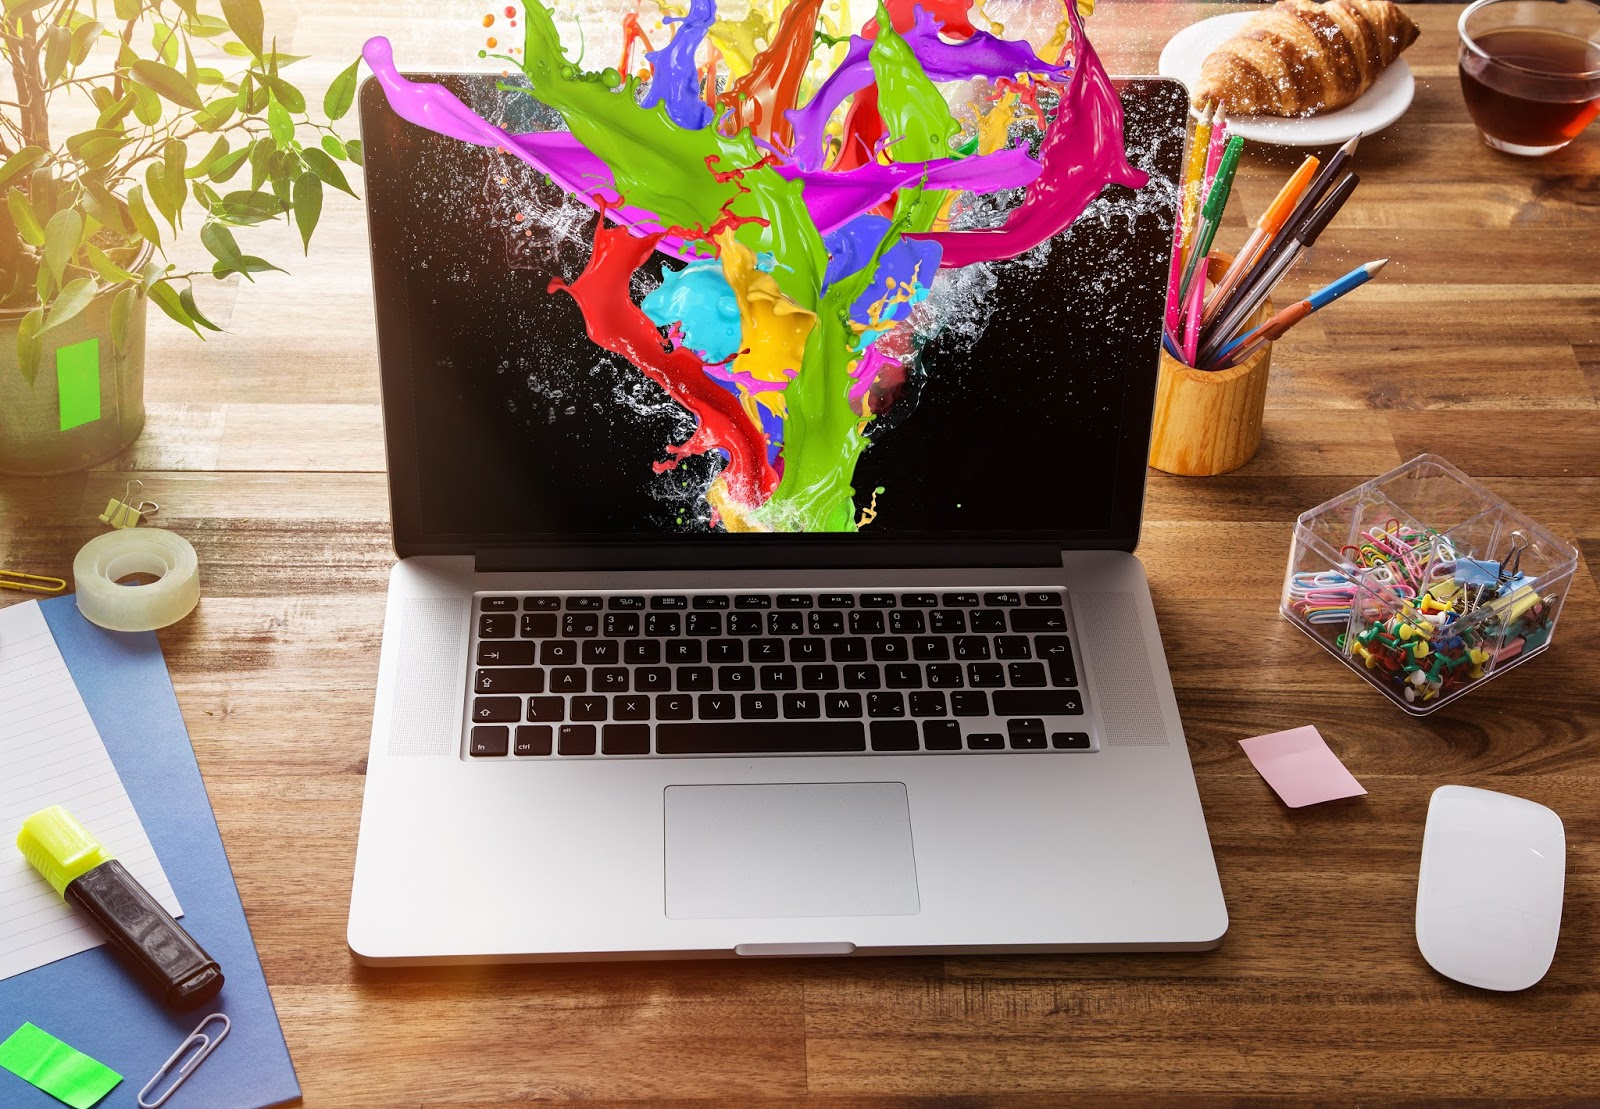 Creative design explodes from this designer's laptop